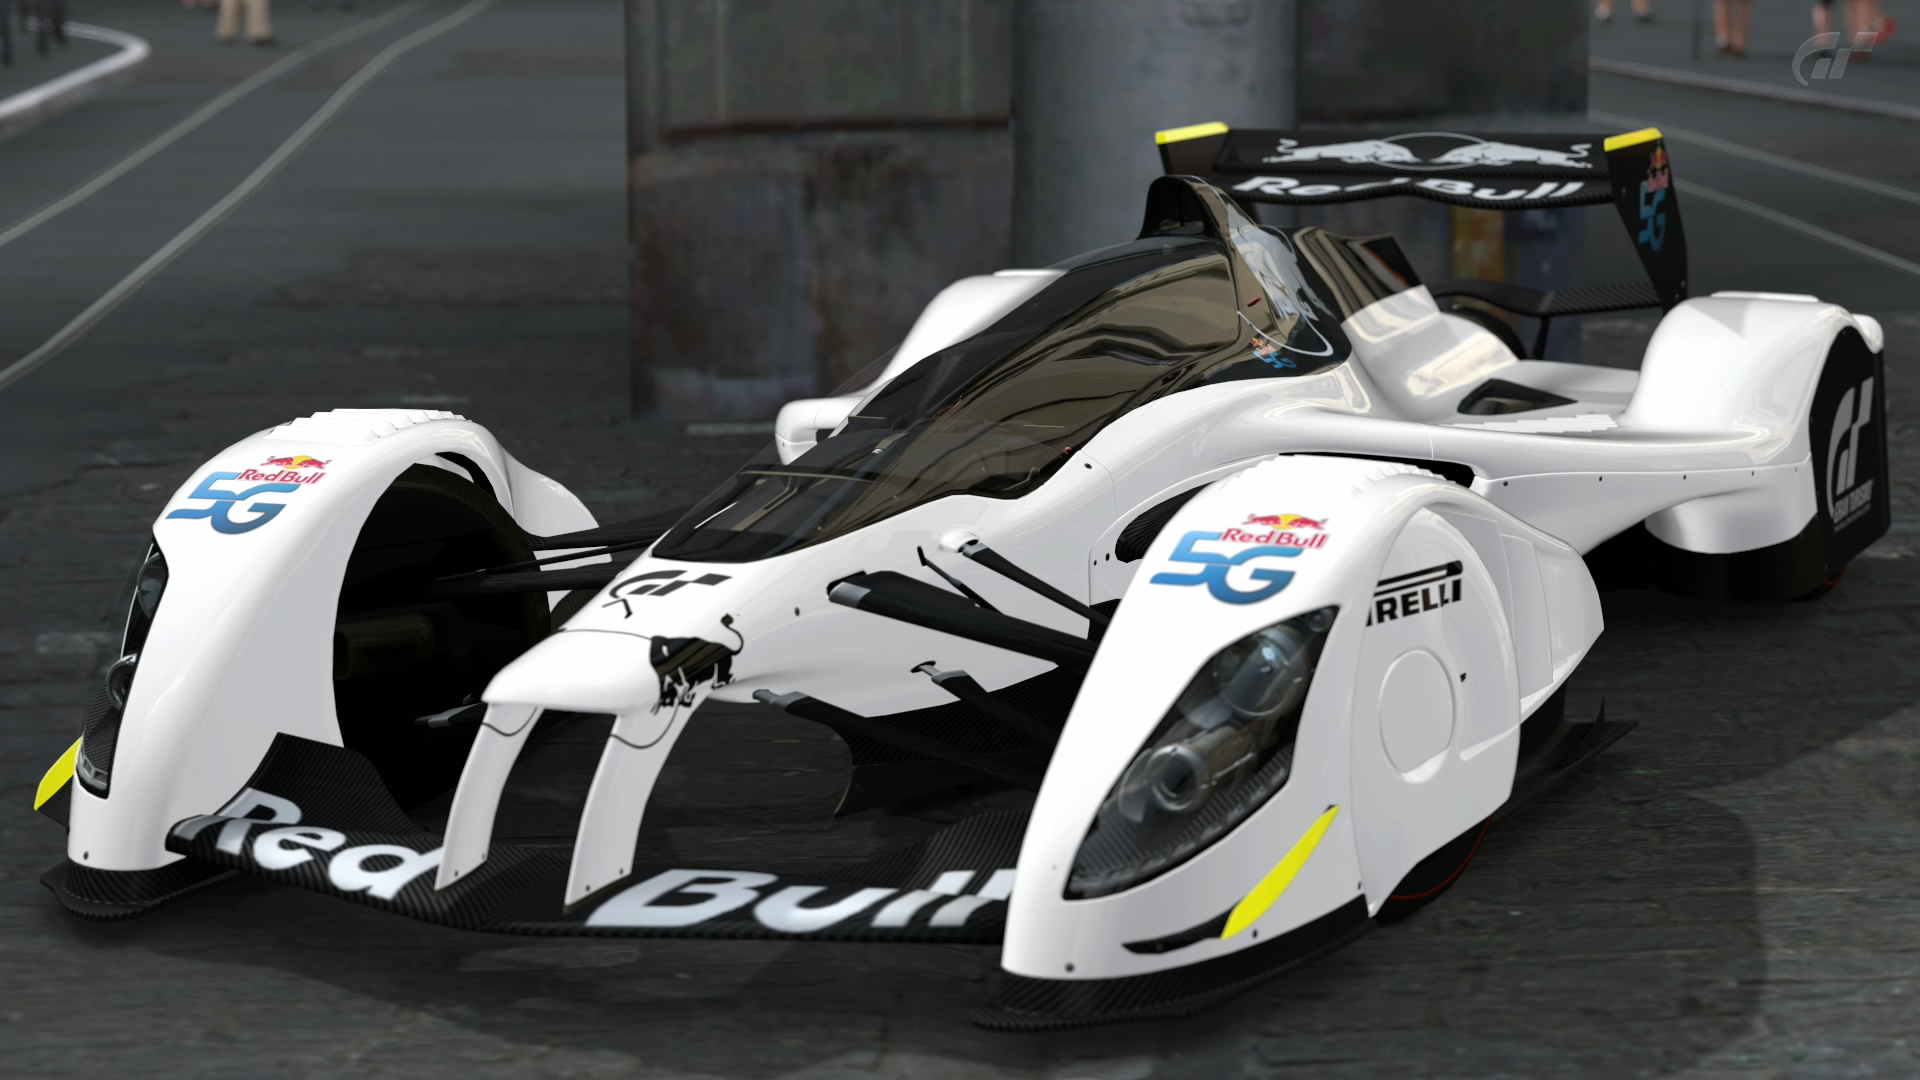 Red Bull X2010 5G | Gran Turismo Wiki | FANDOM powered by Wikia